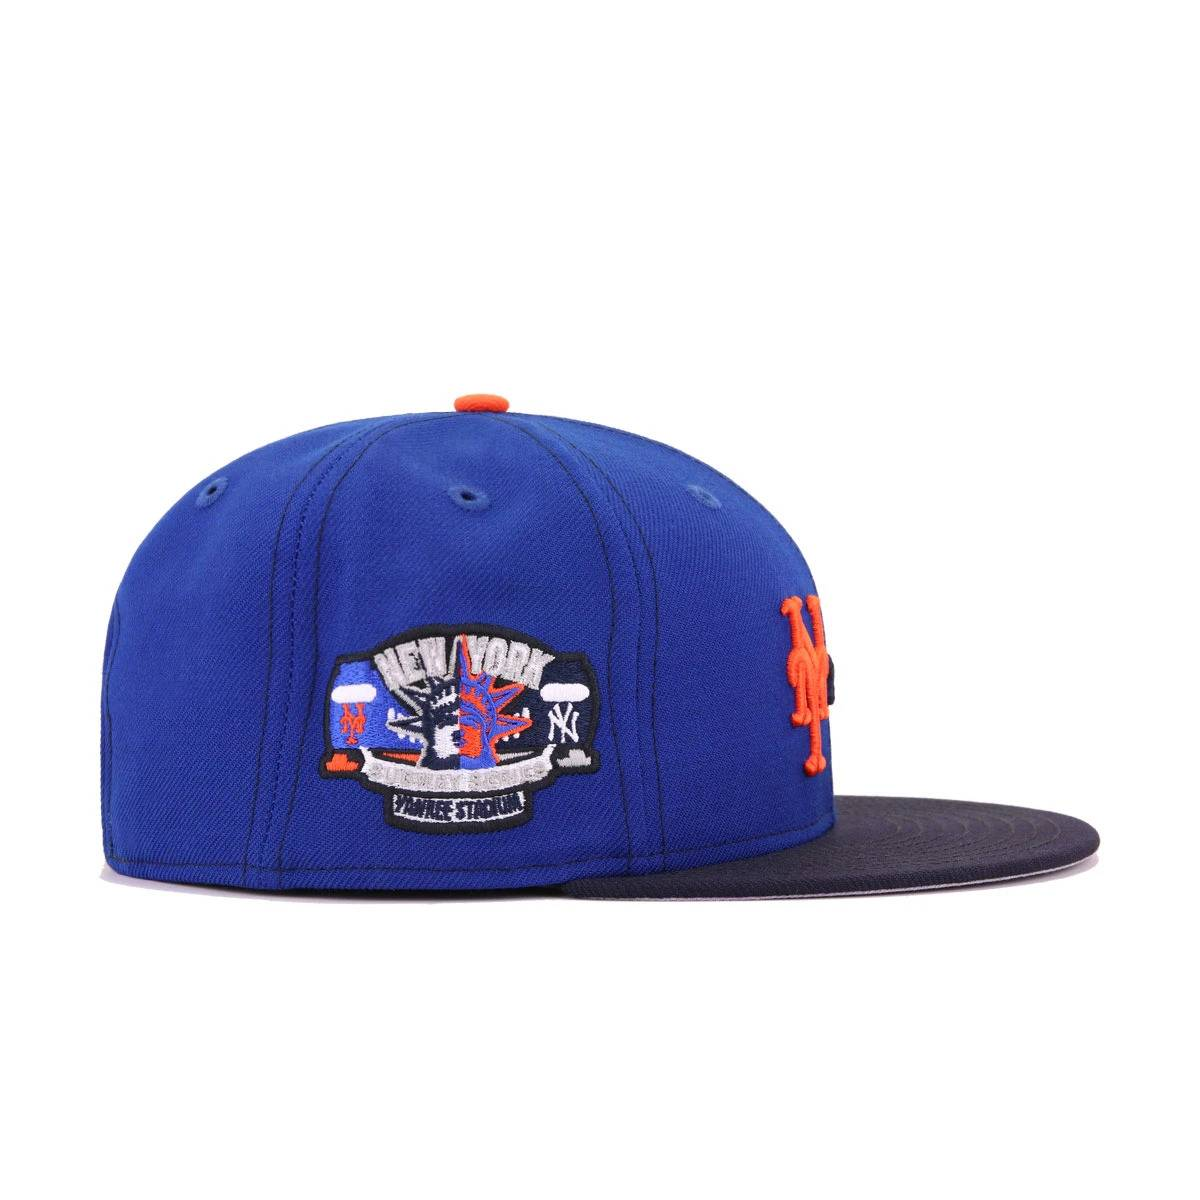 New York Yankees x New York Mets x Hat Heaven Navy Light Royal Blue Subway Series New Era 9Fifty Snapback